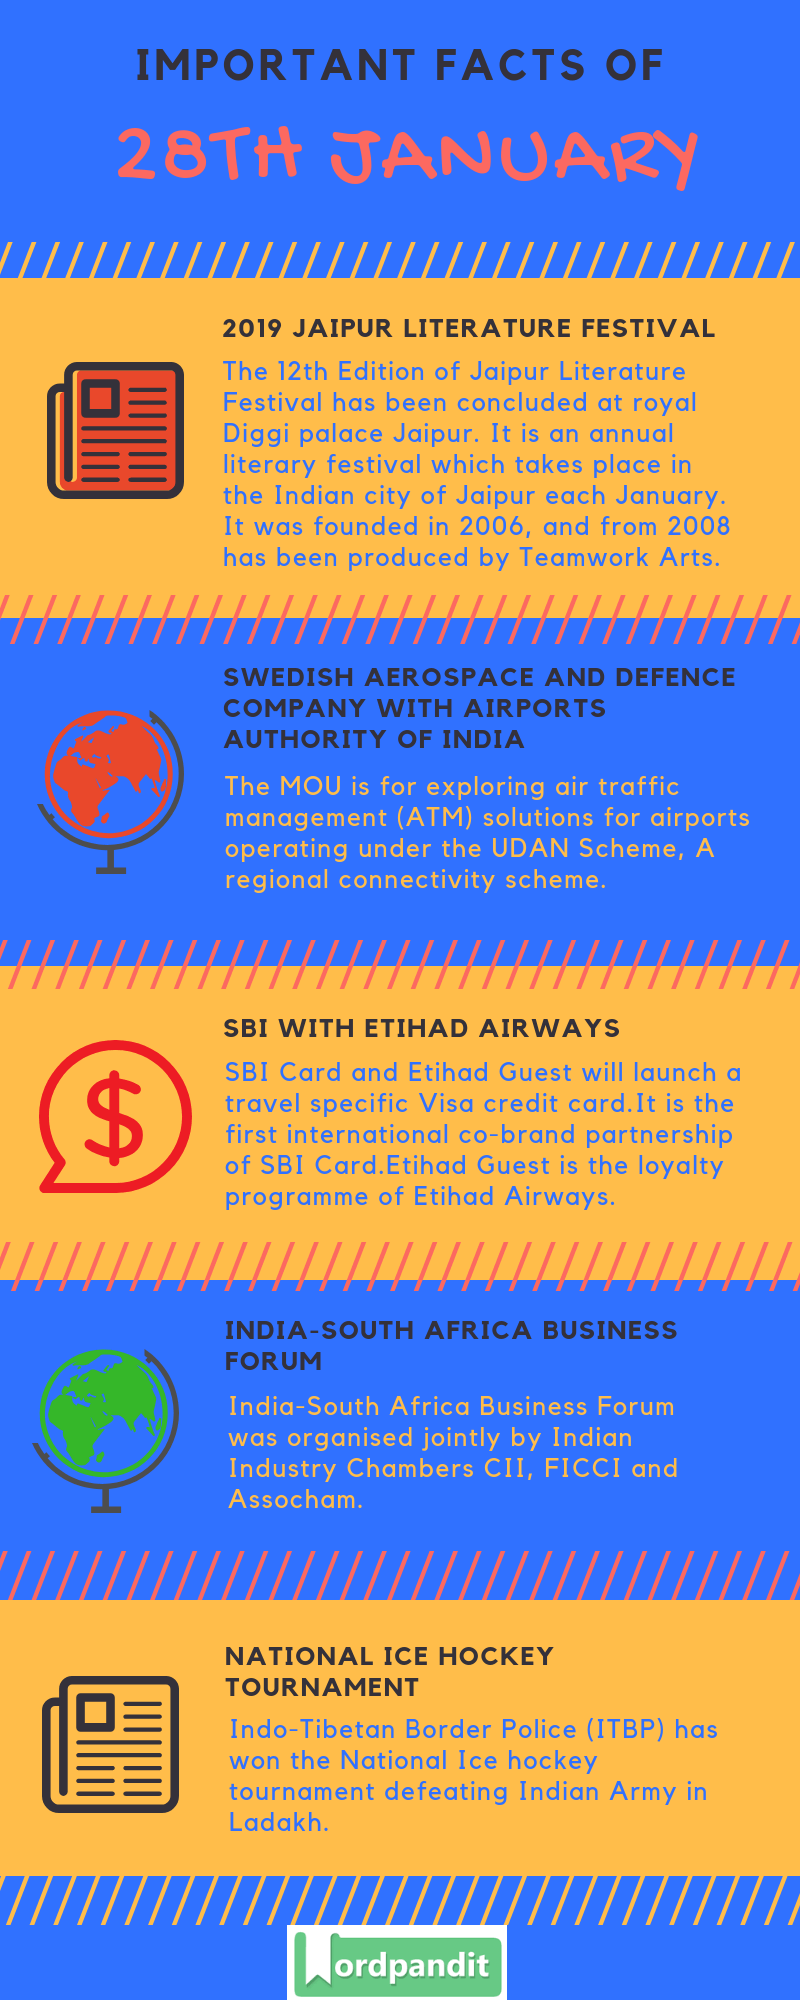 Daily Current Affairs 28 January 2019 Current Affairs Quiz 28 January 2019 Current Affairs Infographic